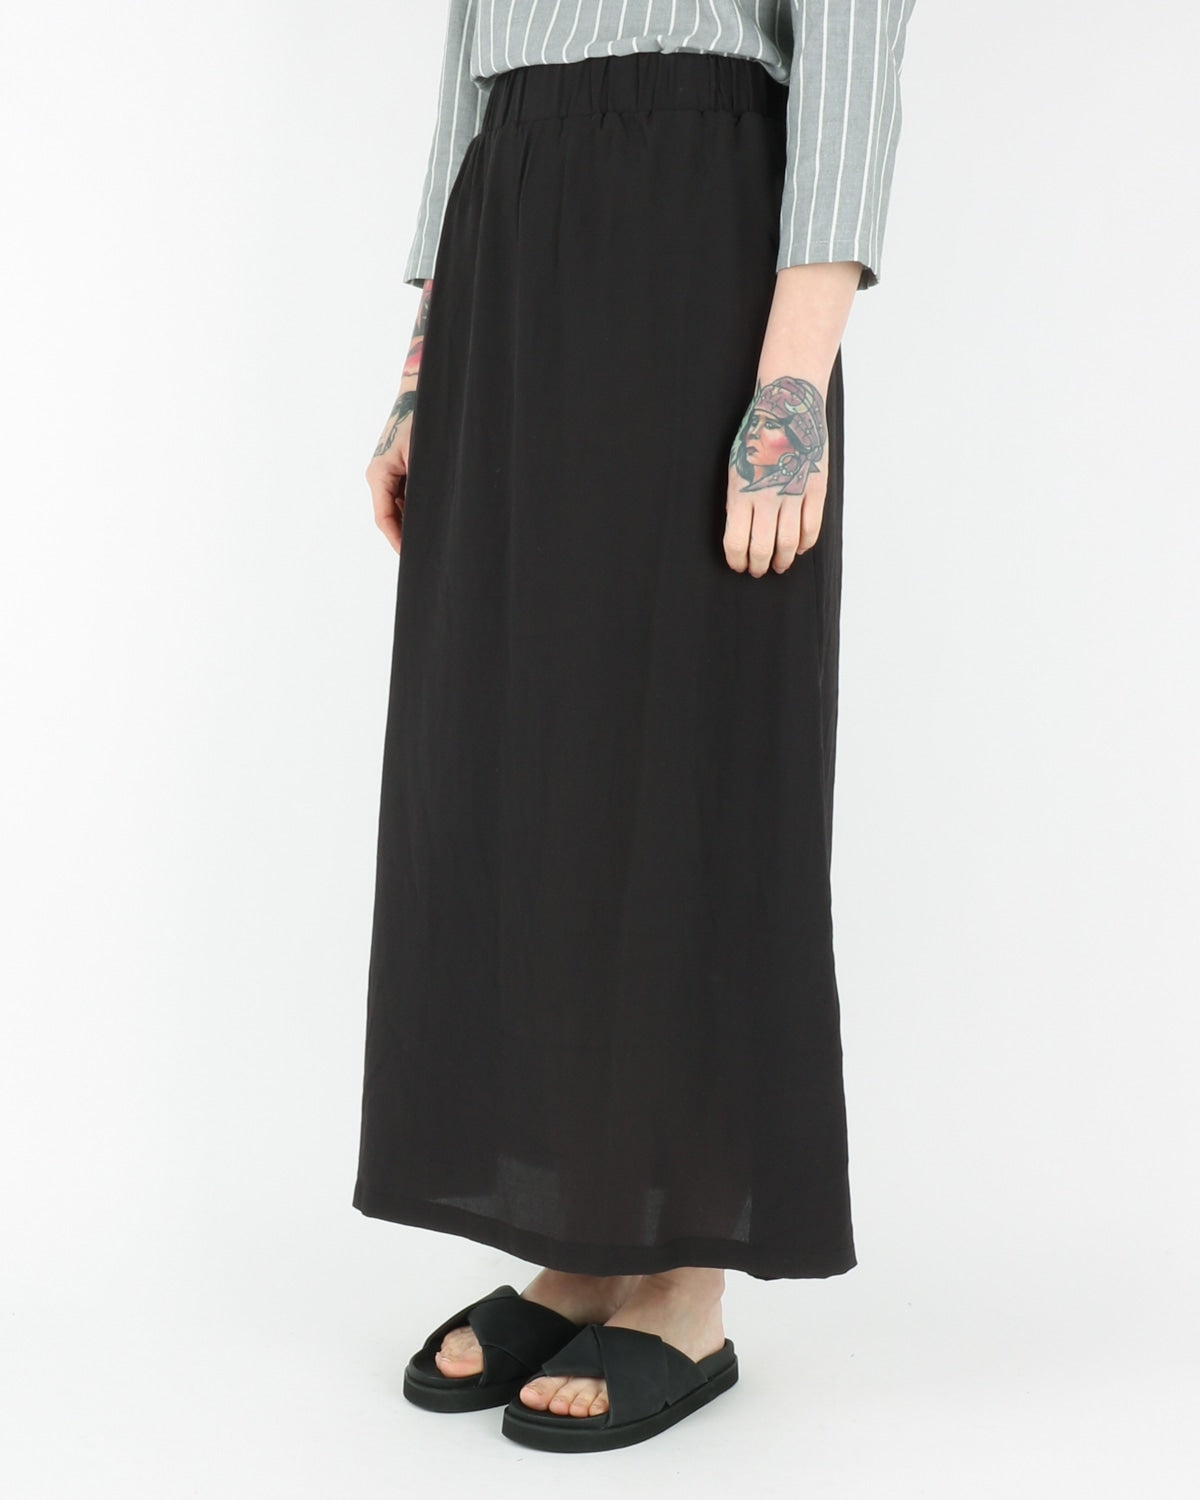 basic apparel_tyra skirt_black_2_2